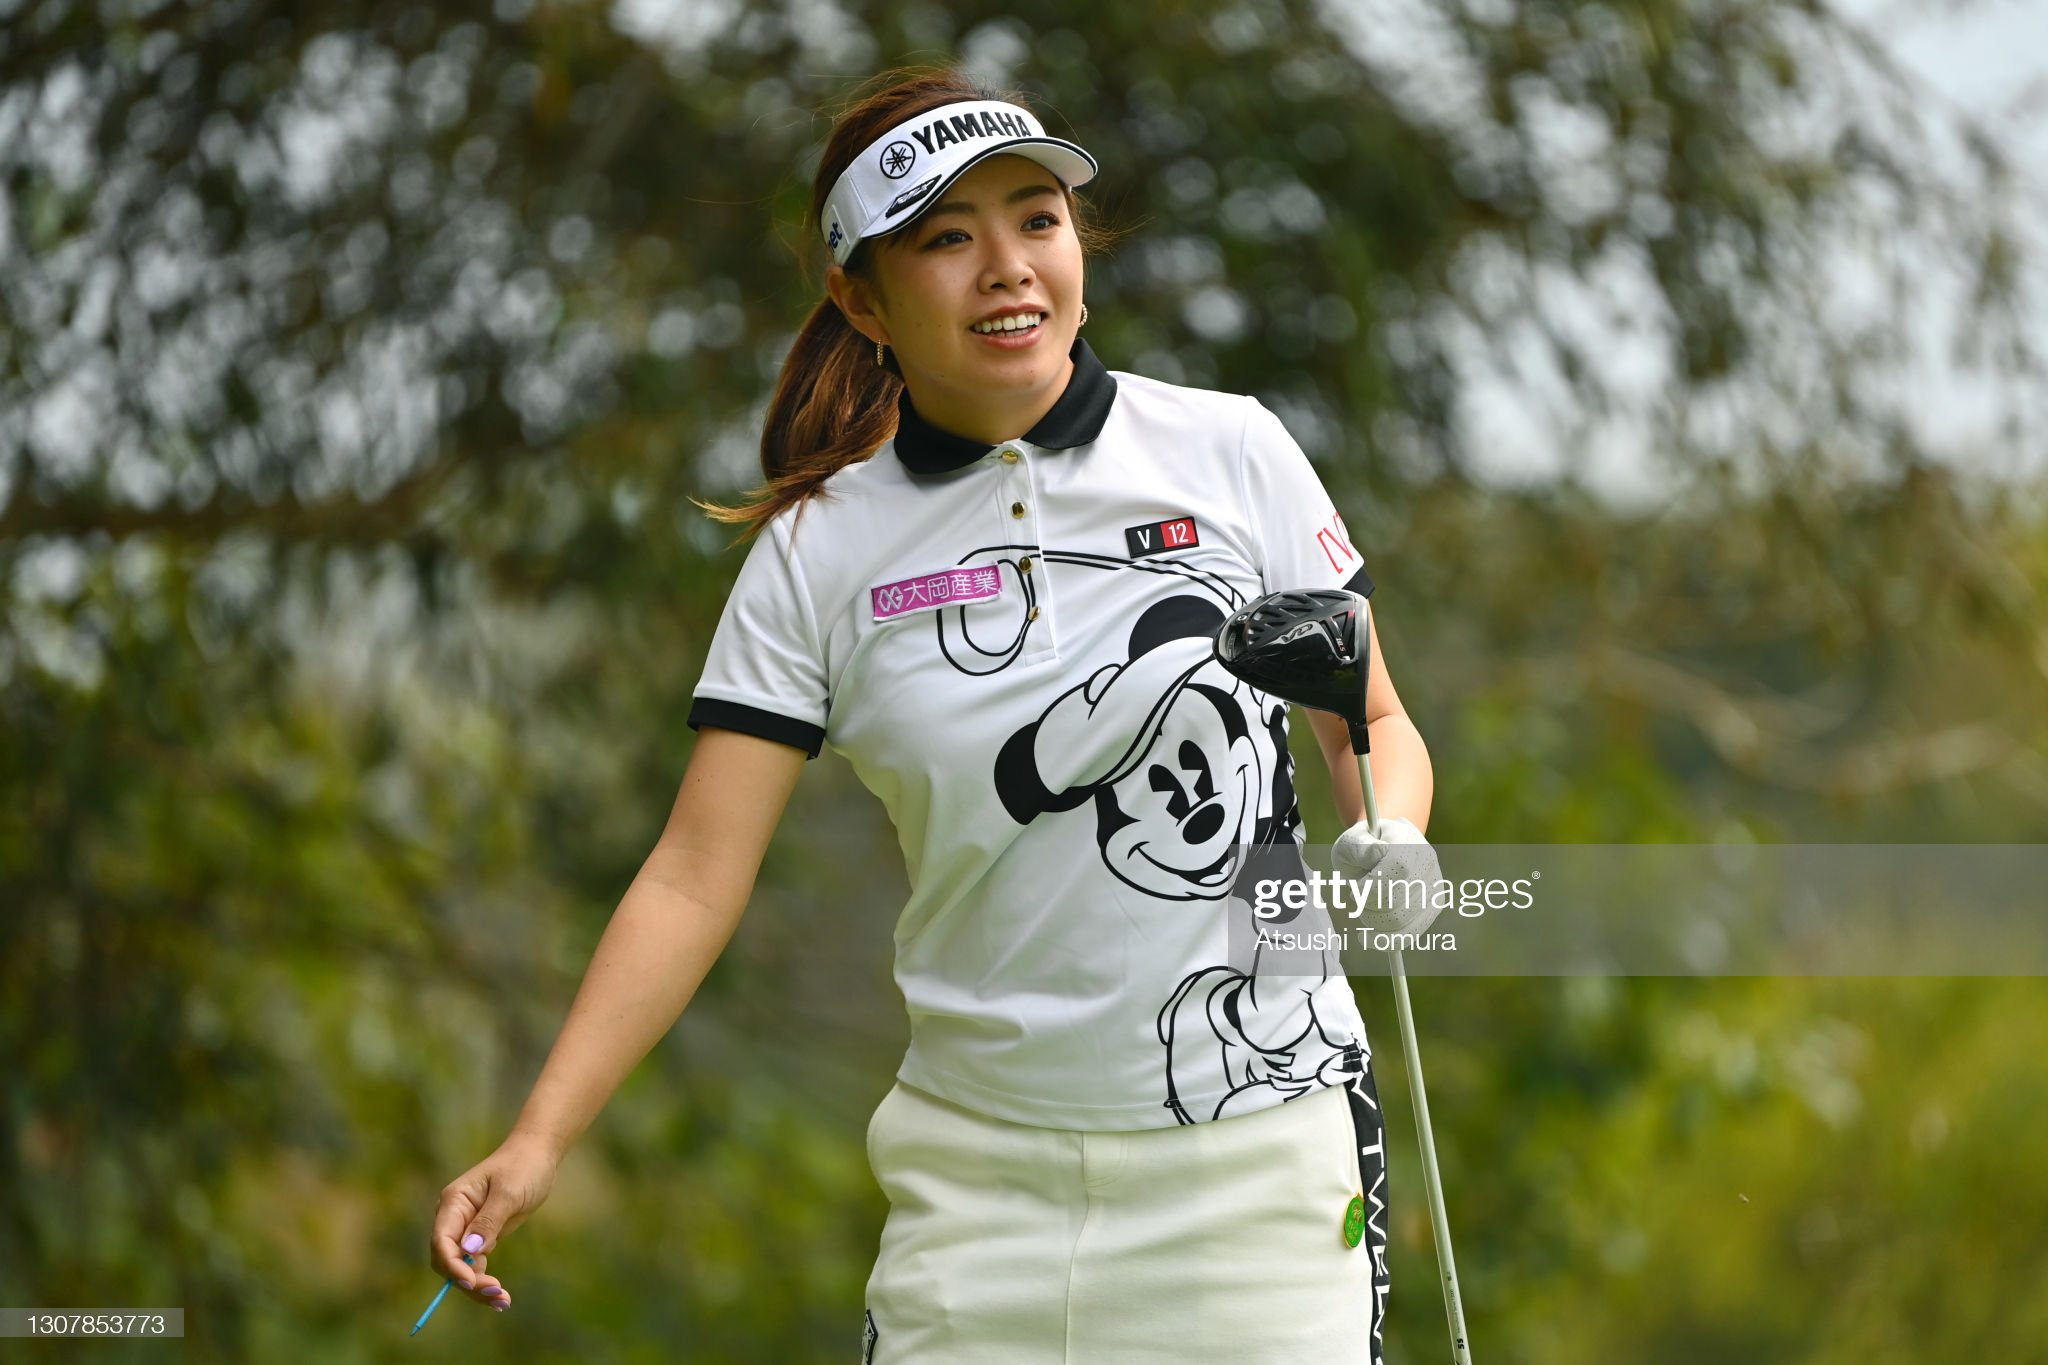 https://media.gettyimages.com/photos/maria-shinohara-of-japan-reacts-after-her-tee-shot-on-the-5th-hole-picture-id1307853773?s=2048x2048